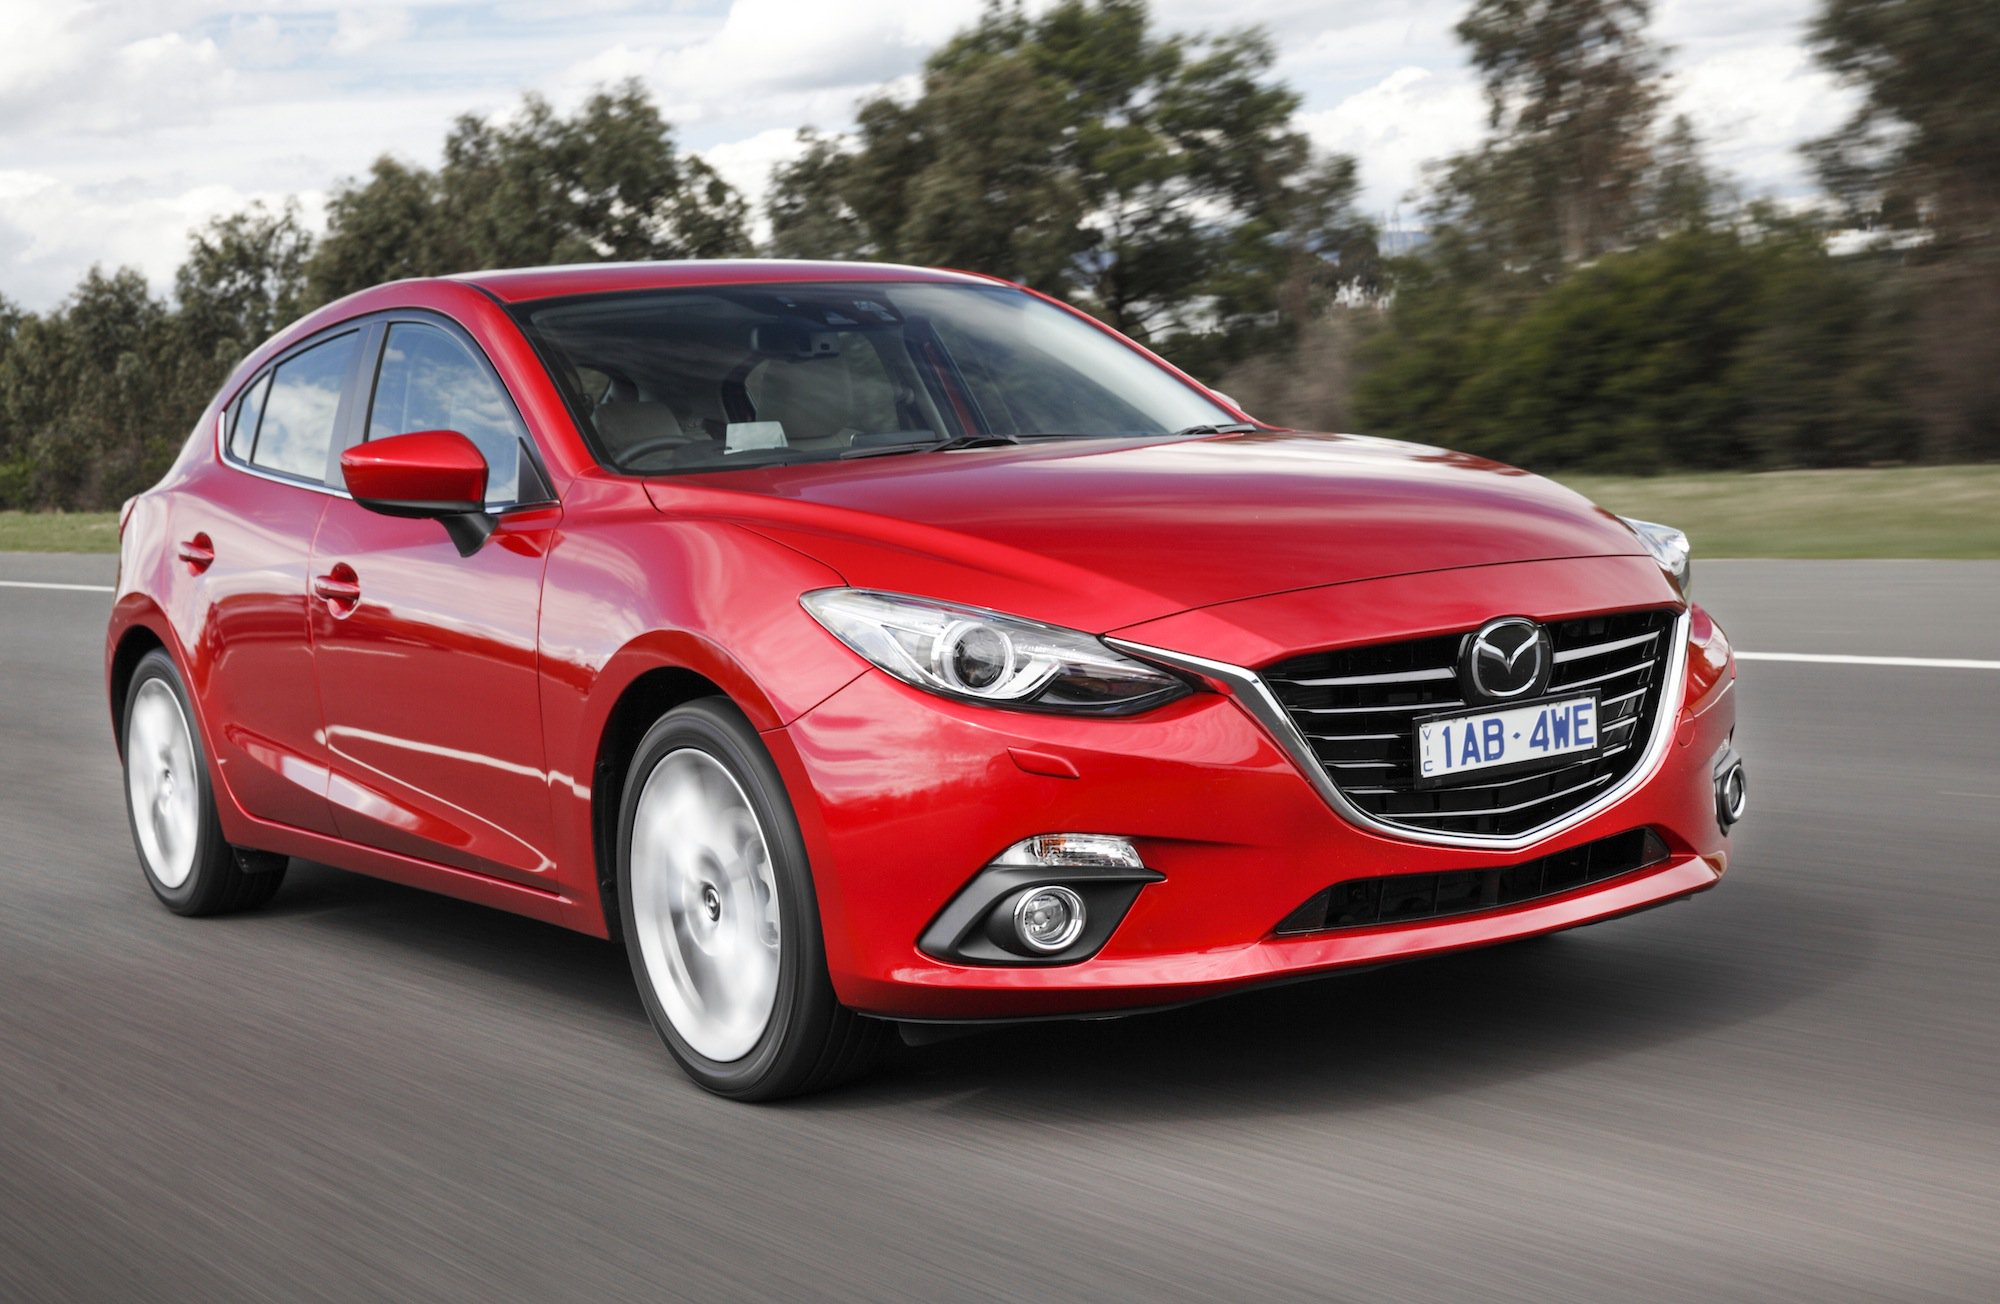 2014 Mazda 3 Pricing And Specifications Caradvice